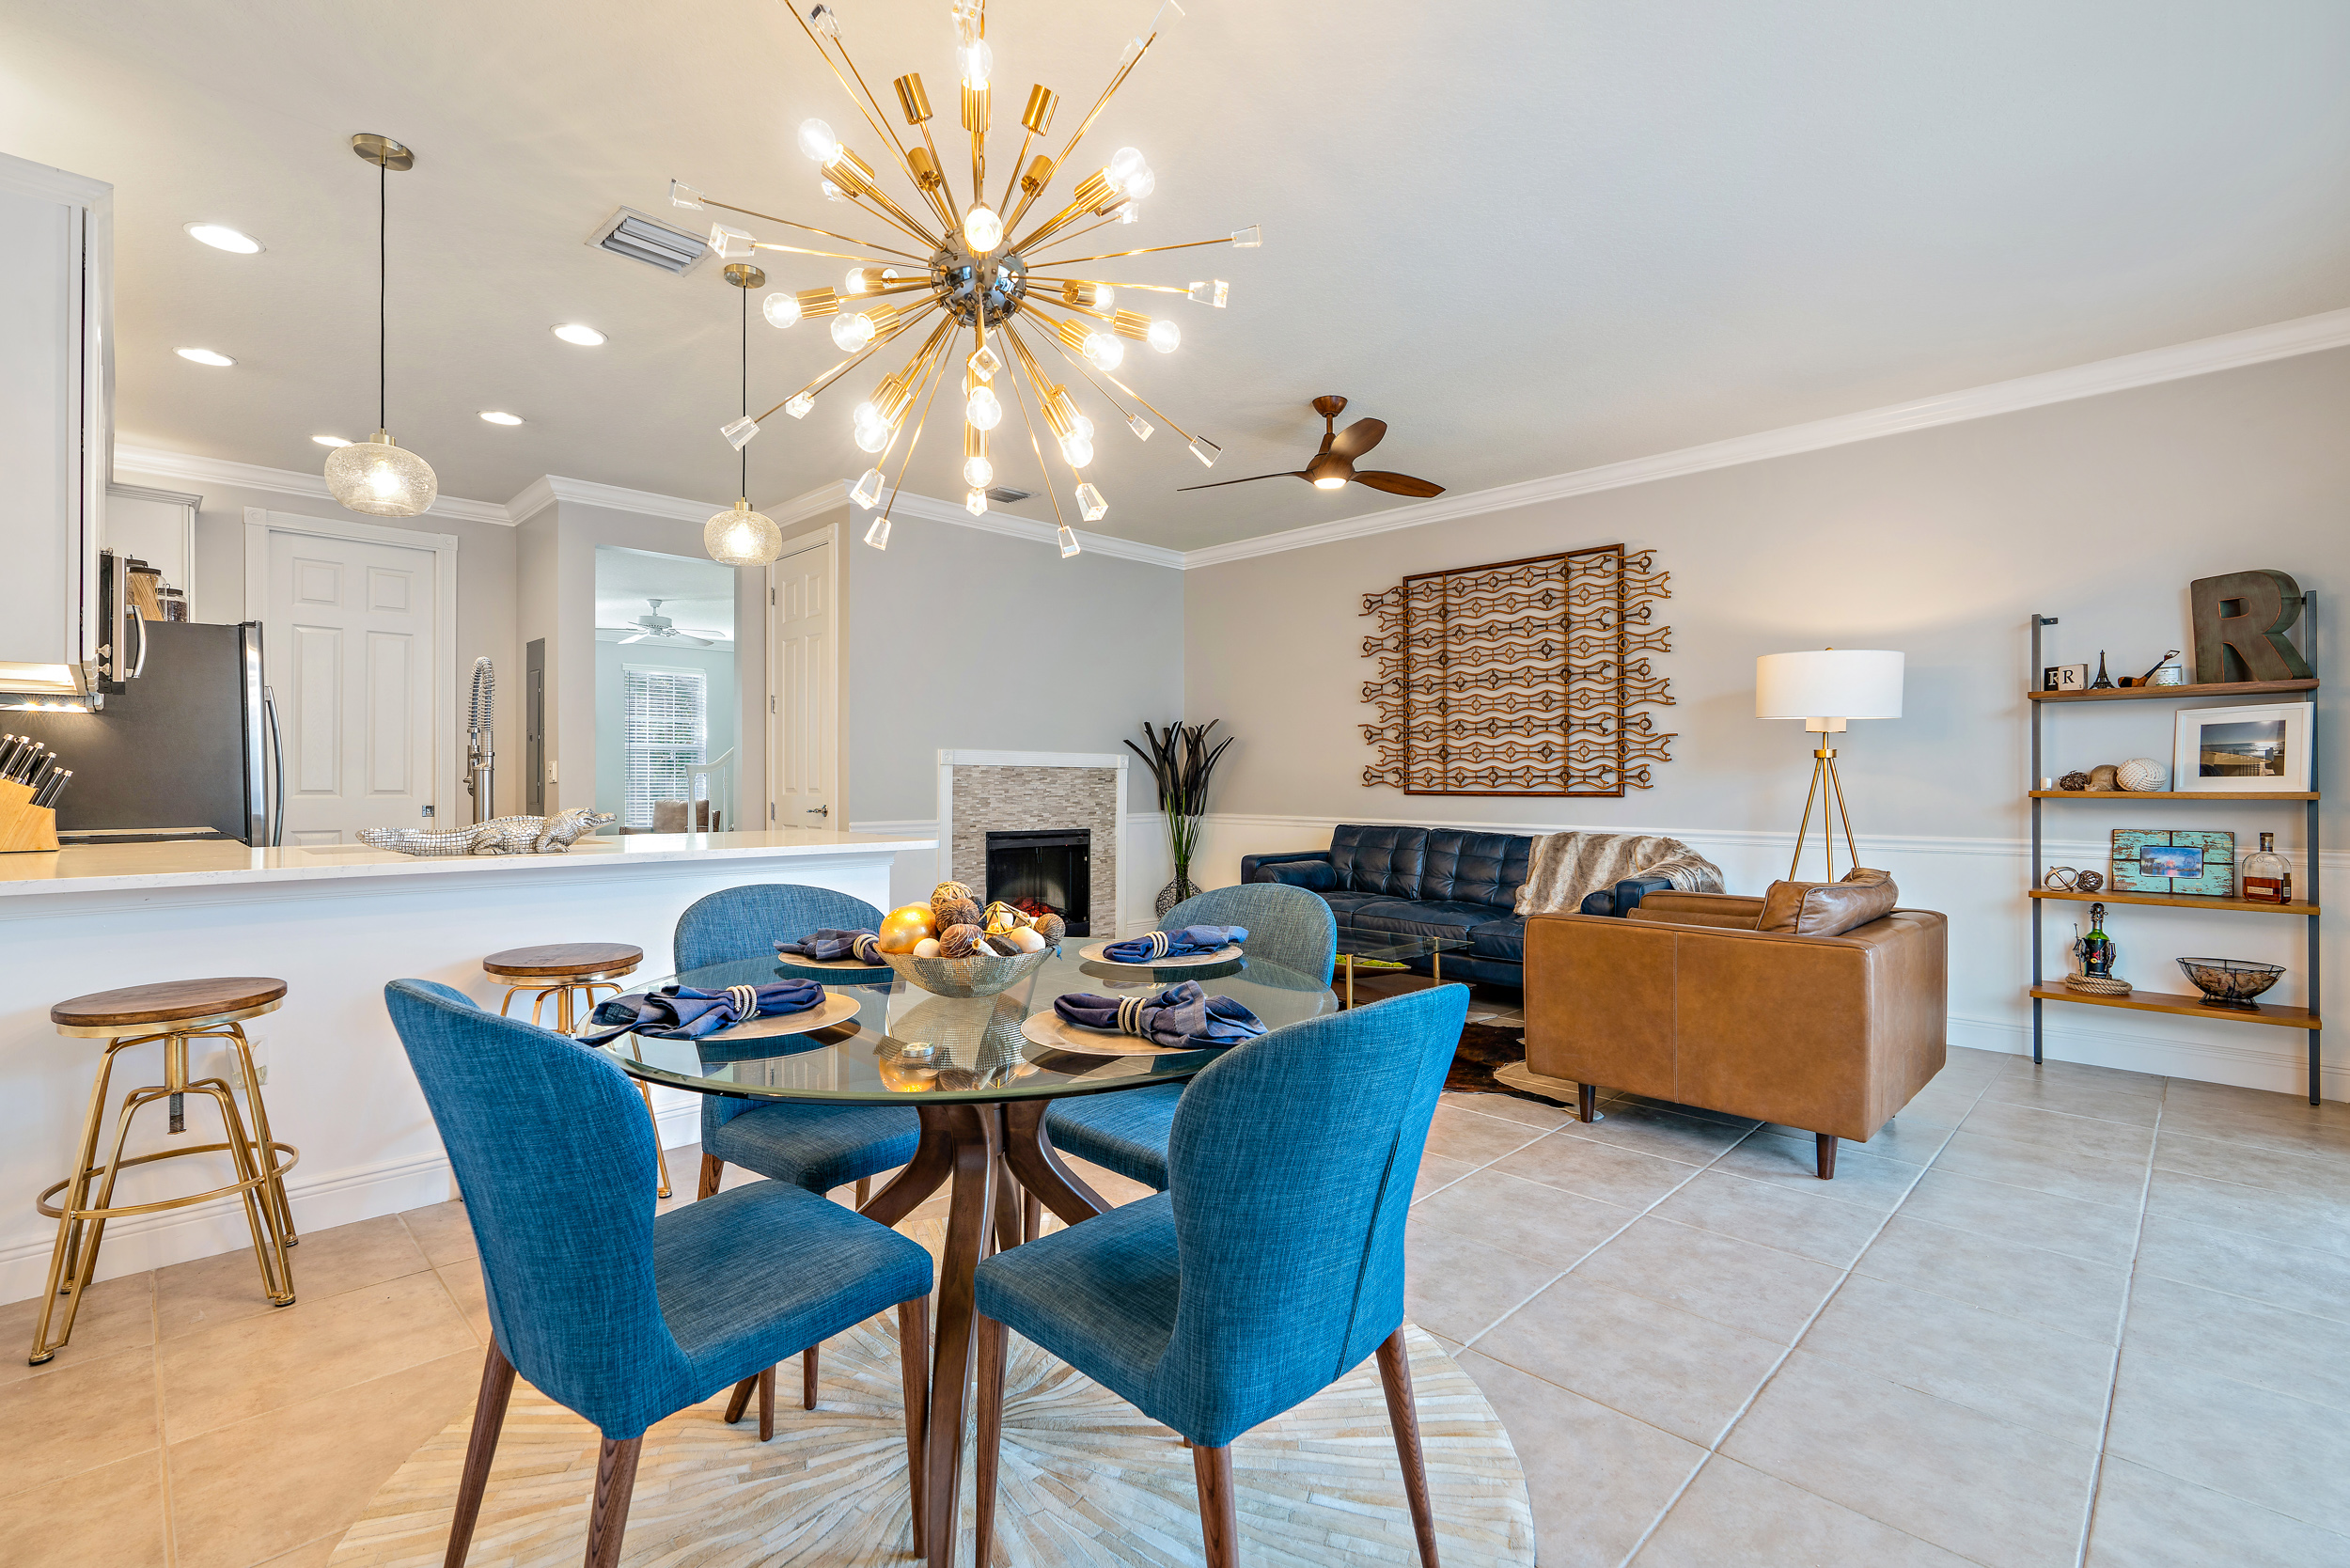 Mallory Creek Homes for sale in jupiter, florida